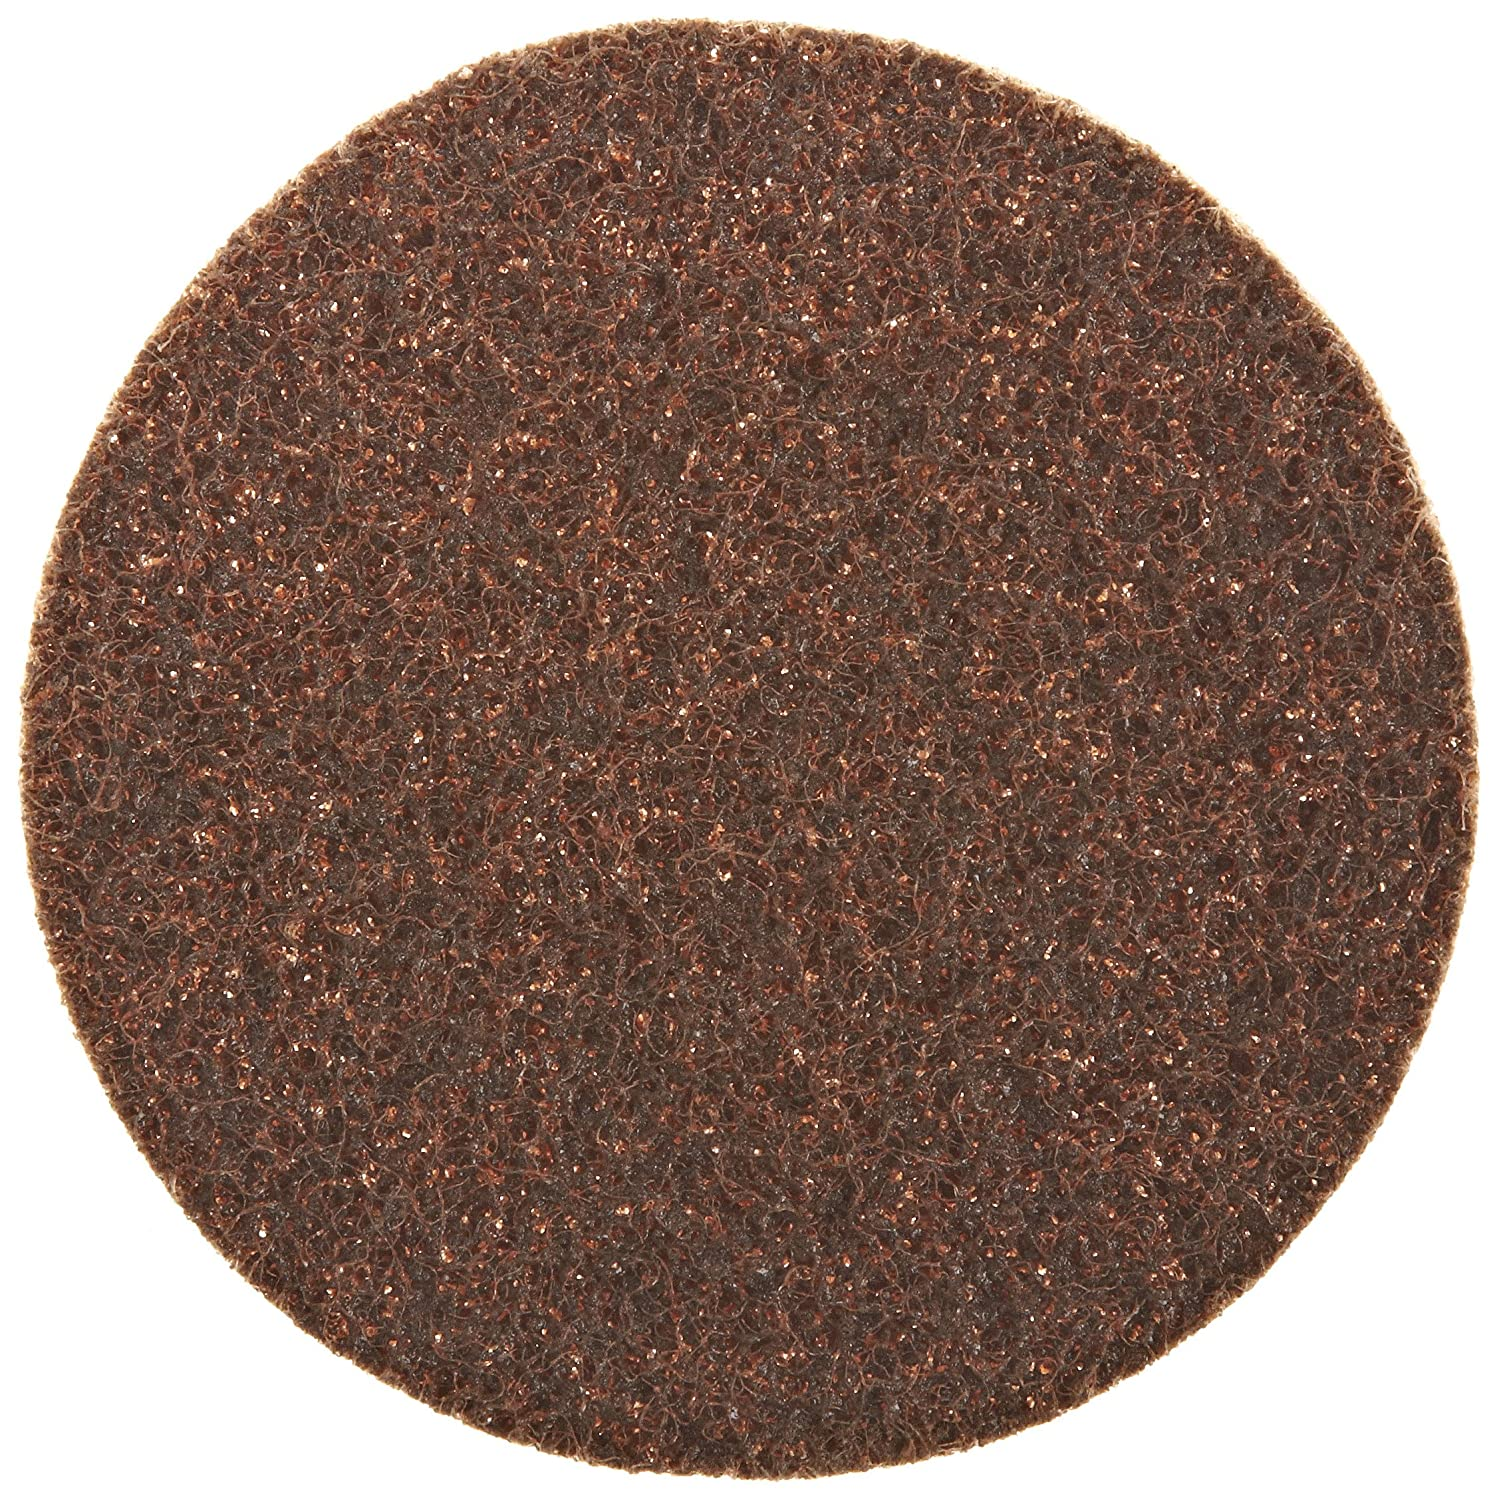 Scotch-Brite(TM) Surface Conditioning Disc, Hook and Loop Attachment, Aluminum Oxide, 4-1/2 Diameter, NH A Coarse (Pack of 50) 3M SC-DH